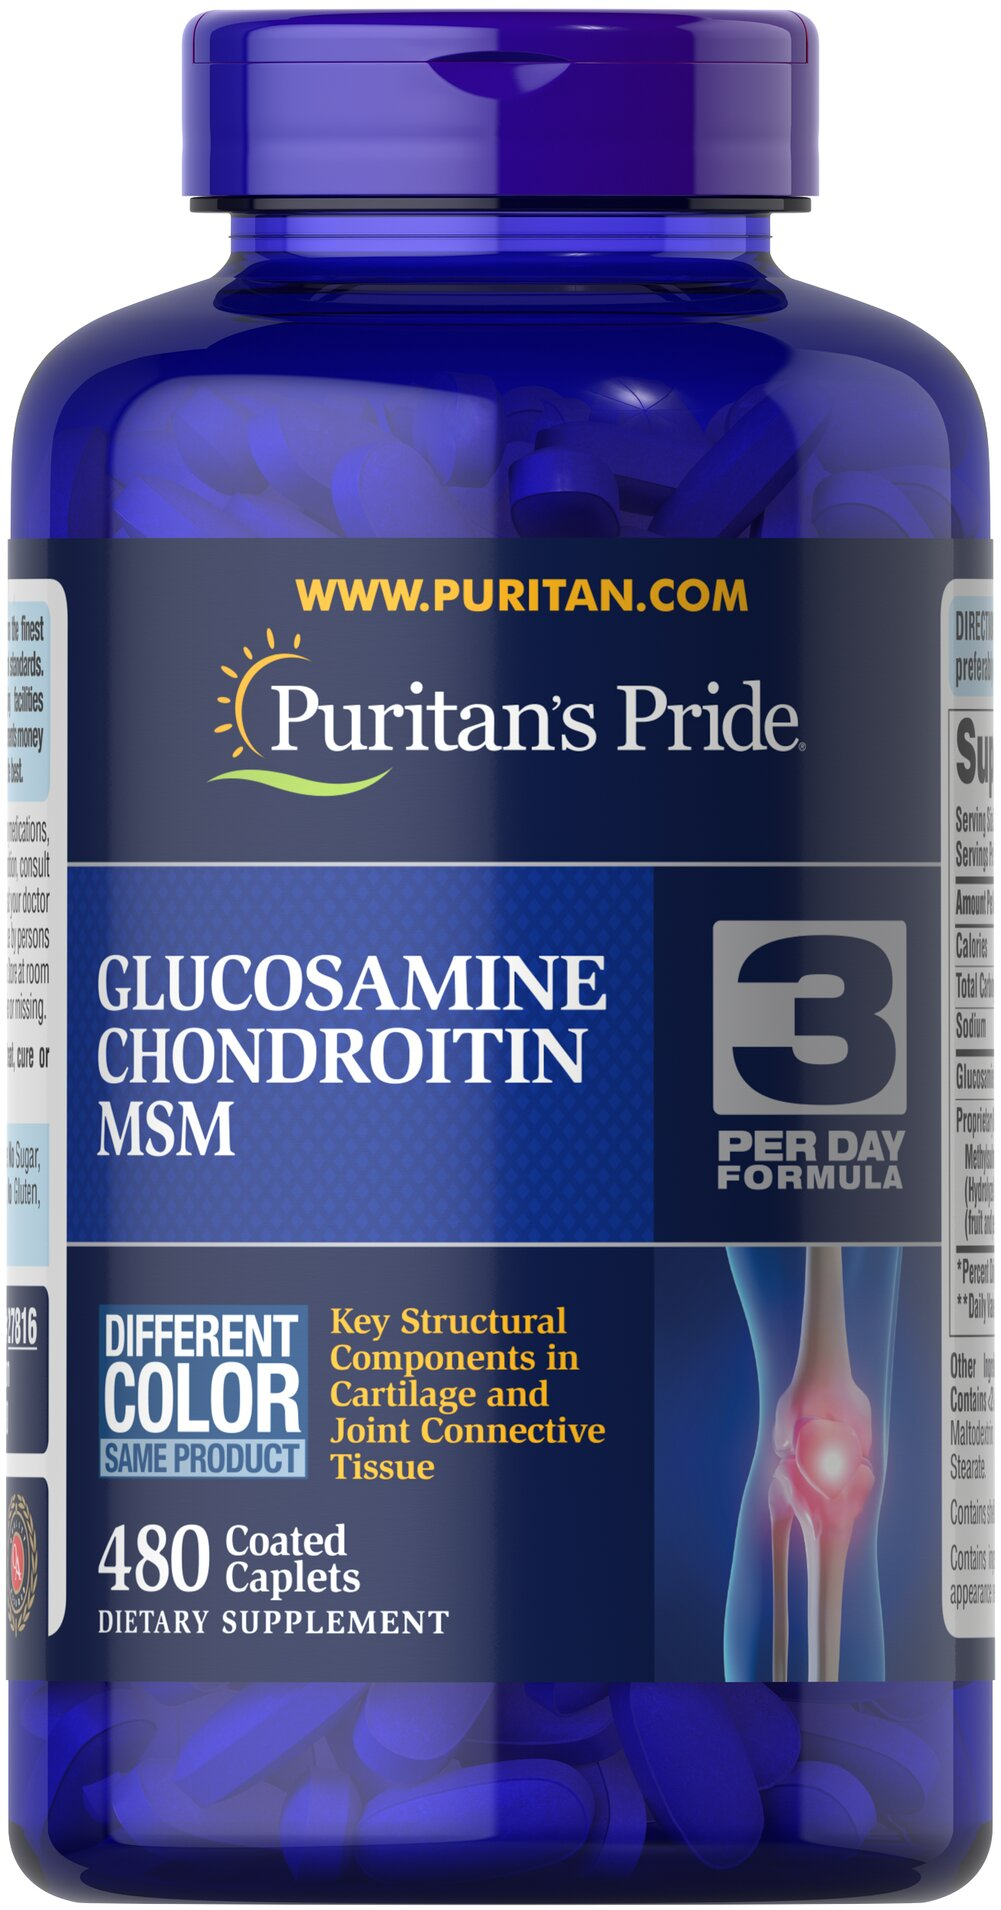 Double Strength Glucosamine, Chondroitin & MSM Joint Soother® <p>Combines the top three structural components found in popular joint support products — Glucosamine, Chondroitin and MSM — with amino and herbal support from Collagen and Boswellia Serrata**</p><p>This high-quality formula delivers 1,500 mg of Glucosamine HCL to help support cartilage, lubricate the joints, and helps with occasional joint stress due to exercise or physical activity**</p> 480 Caplets